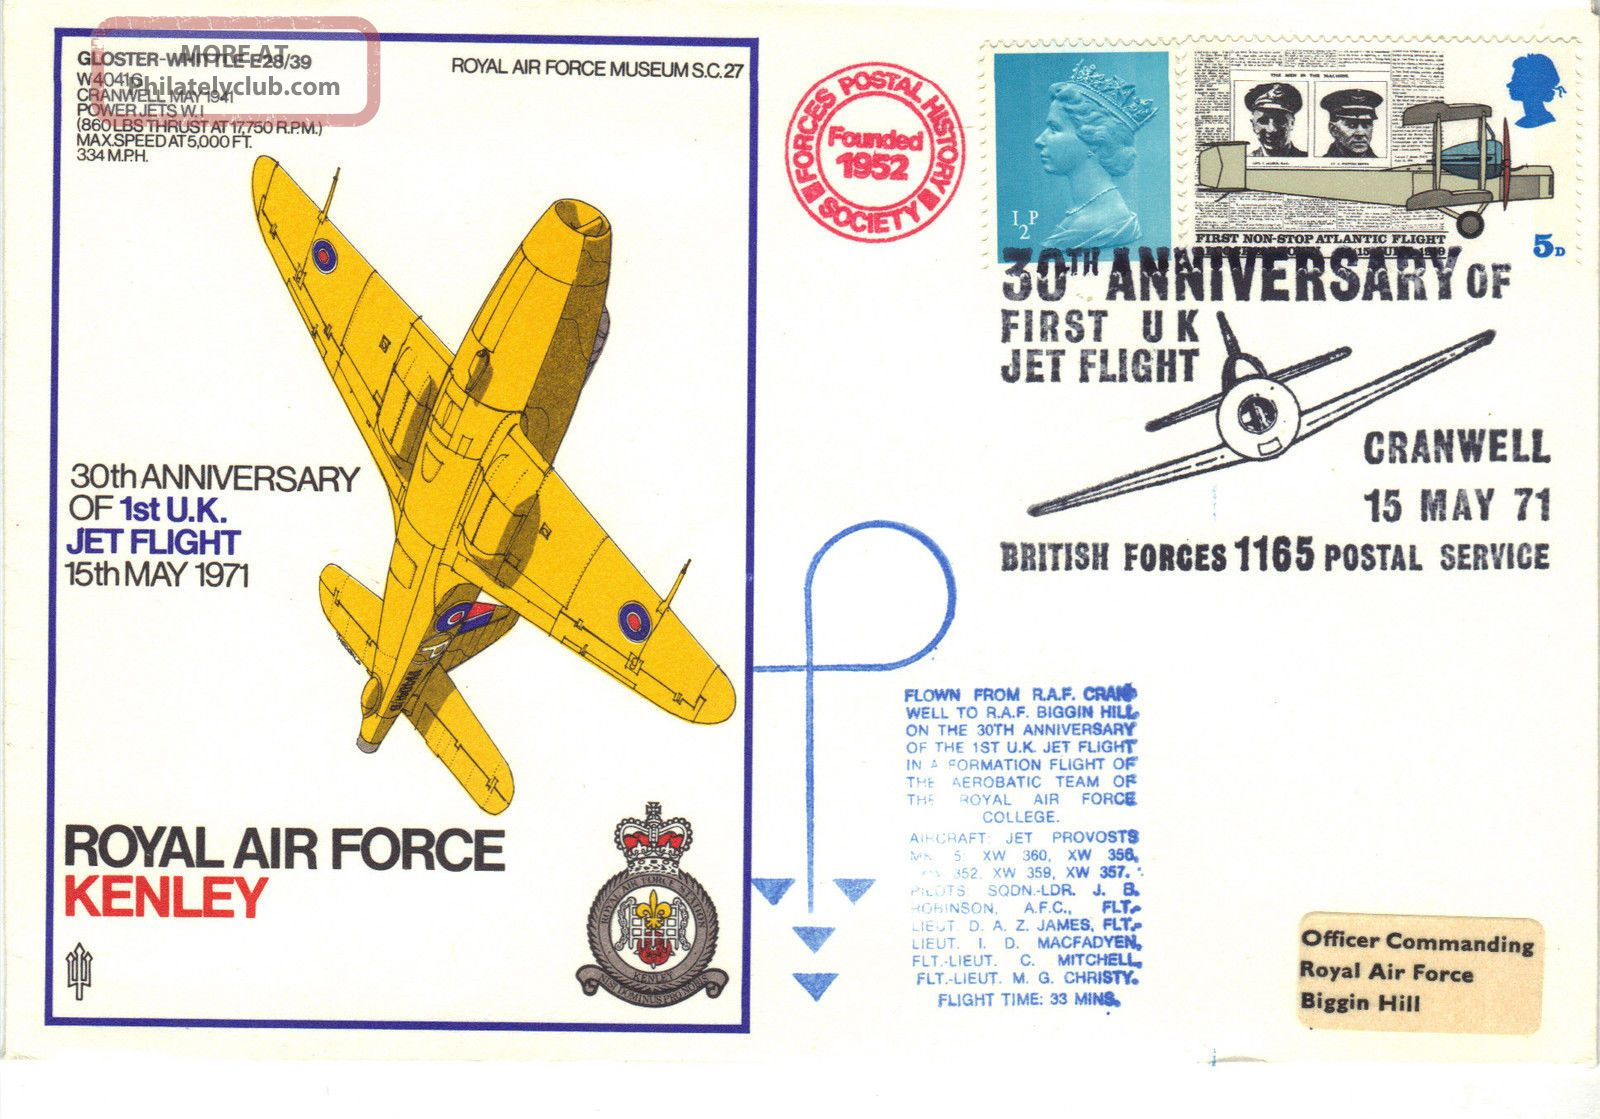 1971 Raf Sc27 30th Anniv 1st Uk Jet Flight Kenley Brps1165 Flown Cover Ref:fp40 Transportation photo